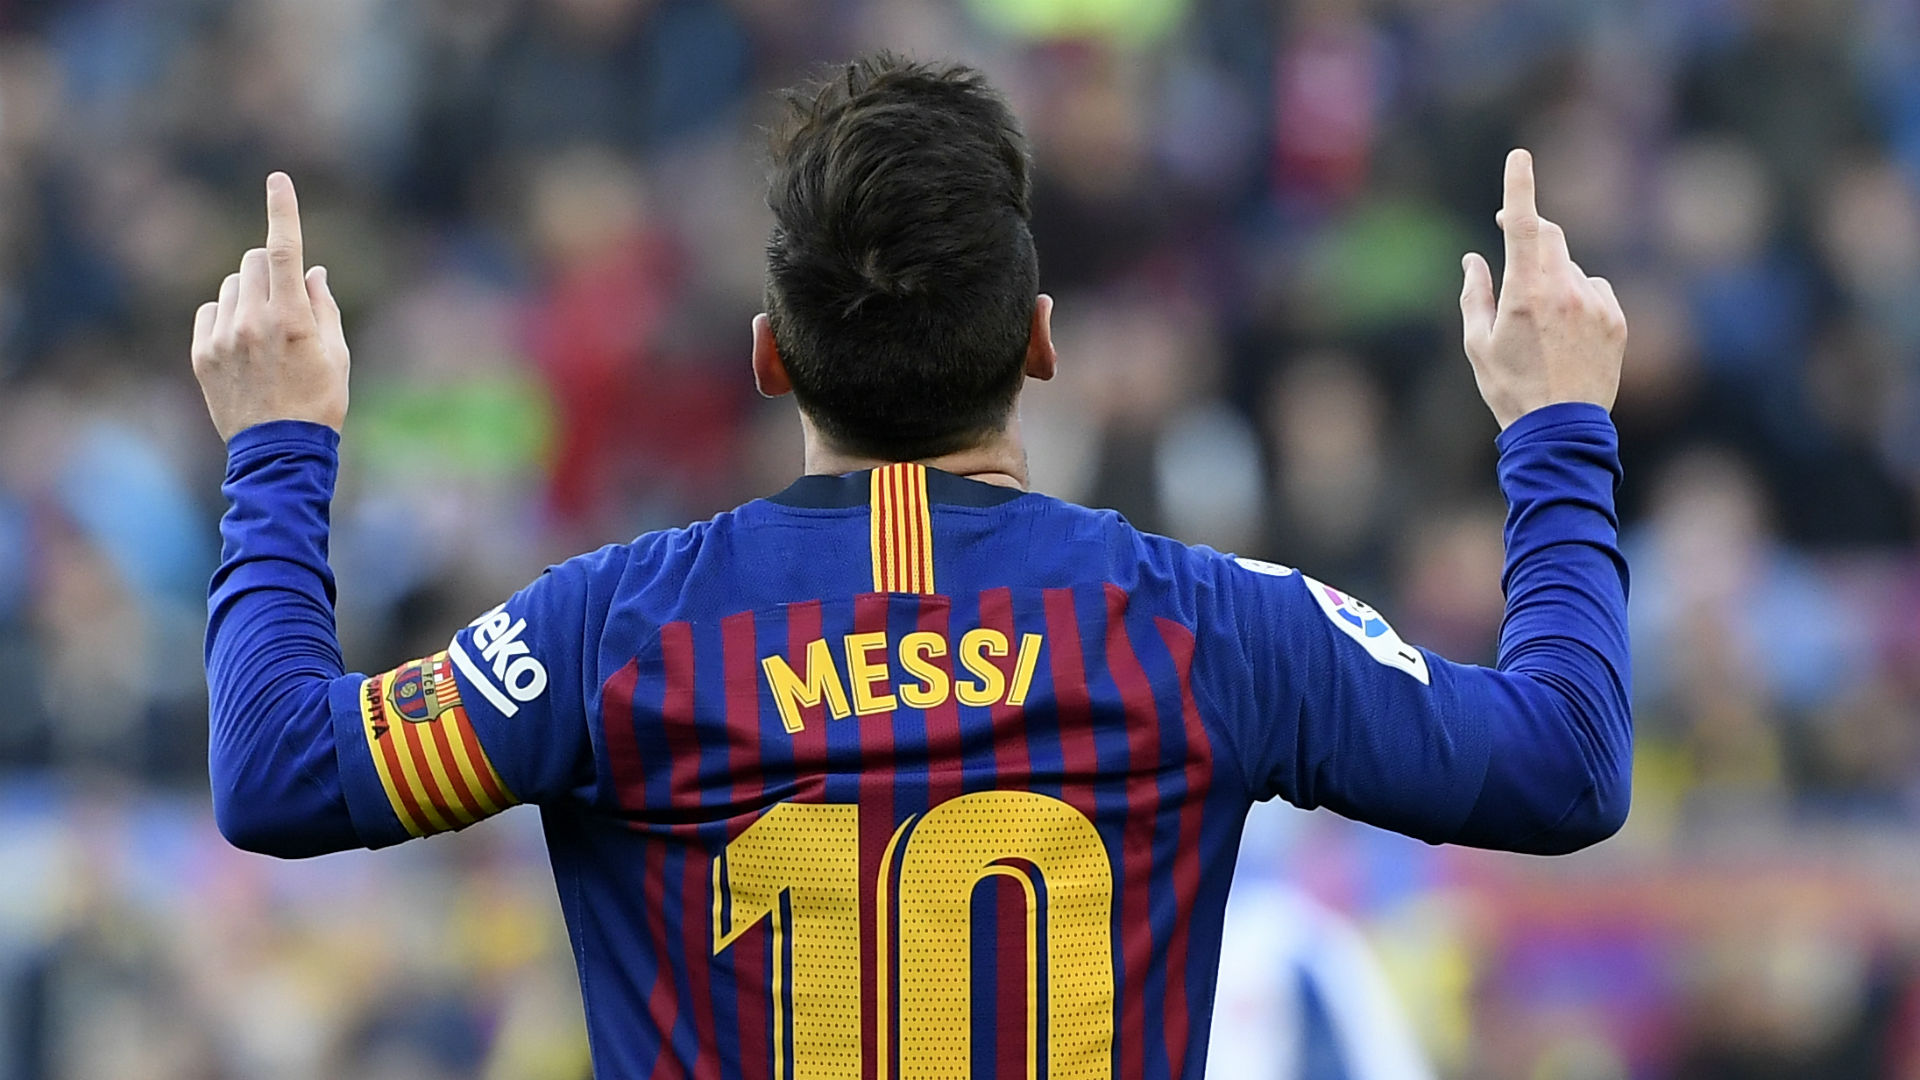 Messi scores first goal of season in Barcelona win